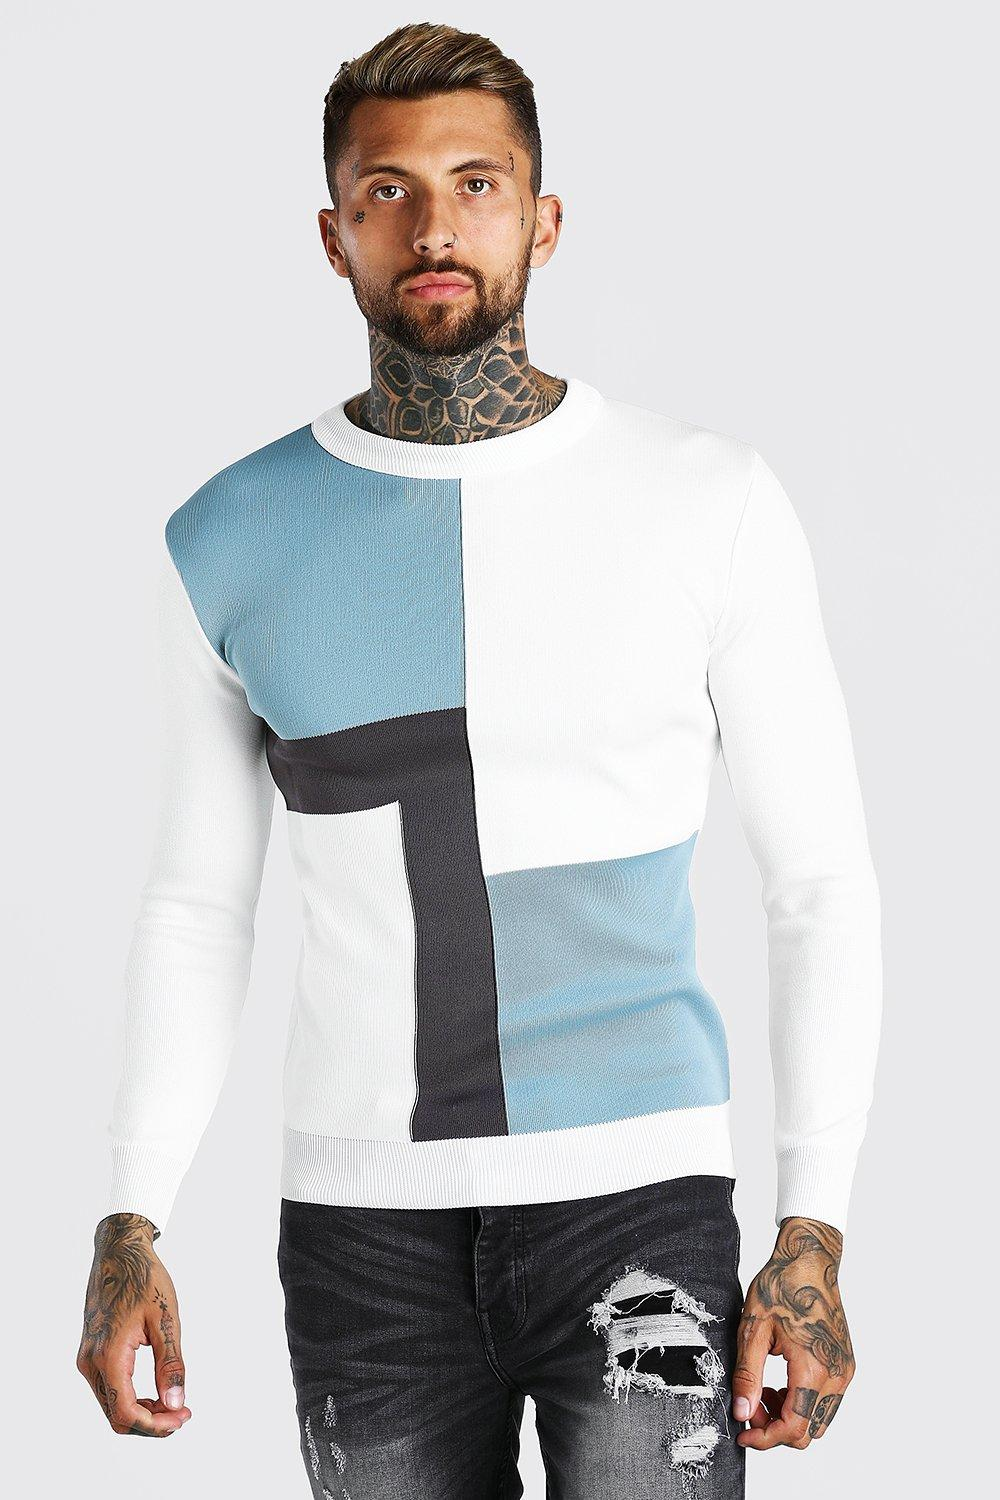 Men's Vintage Sweaters, Retro Jumpers 1920s to 1980s Mens Colour Block Muscle Fit Knitted Sweater - Blue $19.20 AT vintagedancer.com